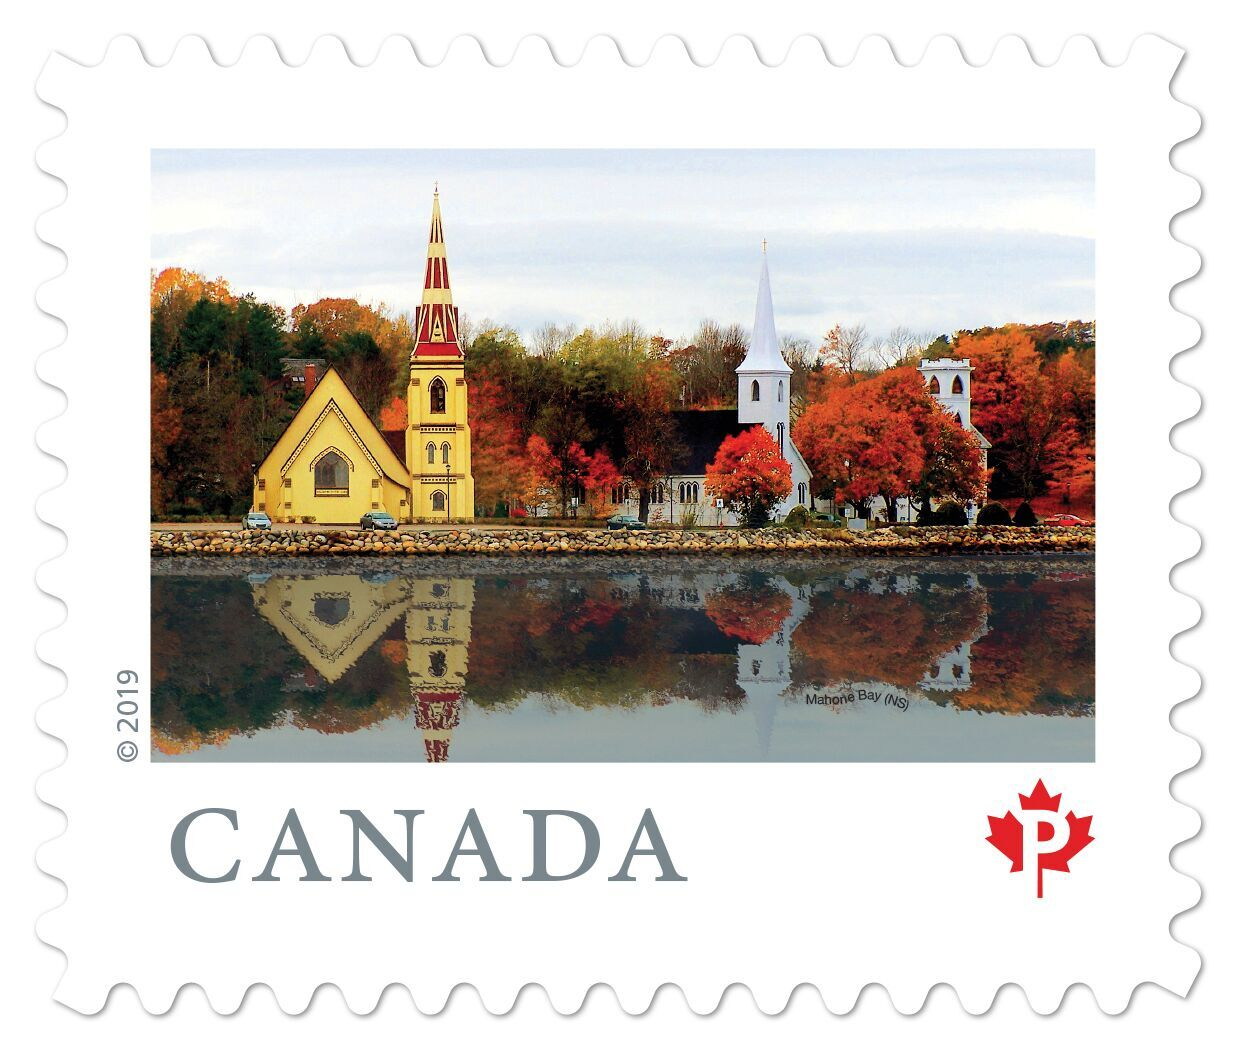 Canada - From Far and Wide (January 14, 2019) Mahone Bay, Nova Scotia (domestic P rate from booklet of 10)